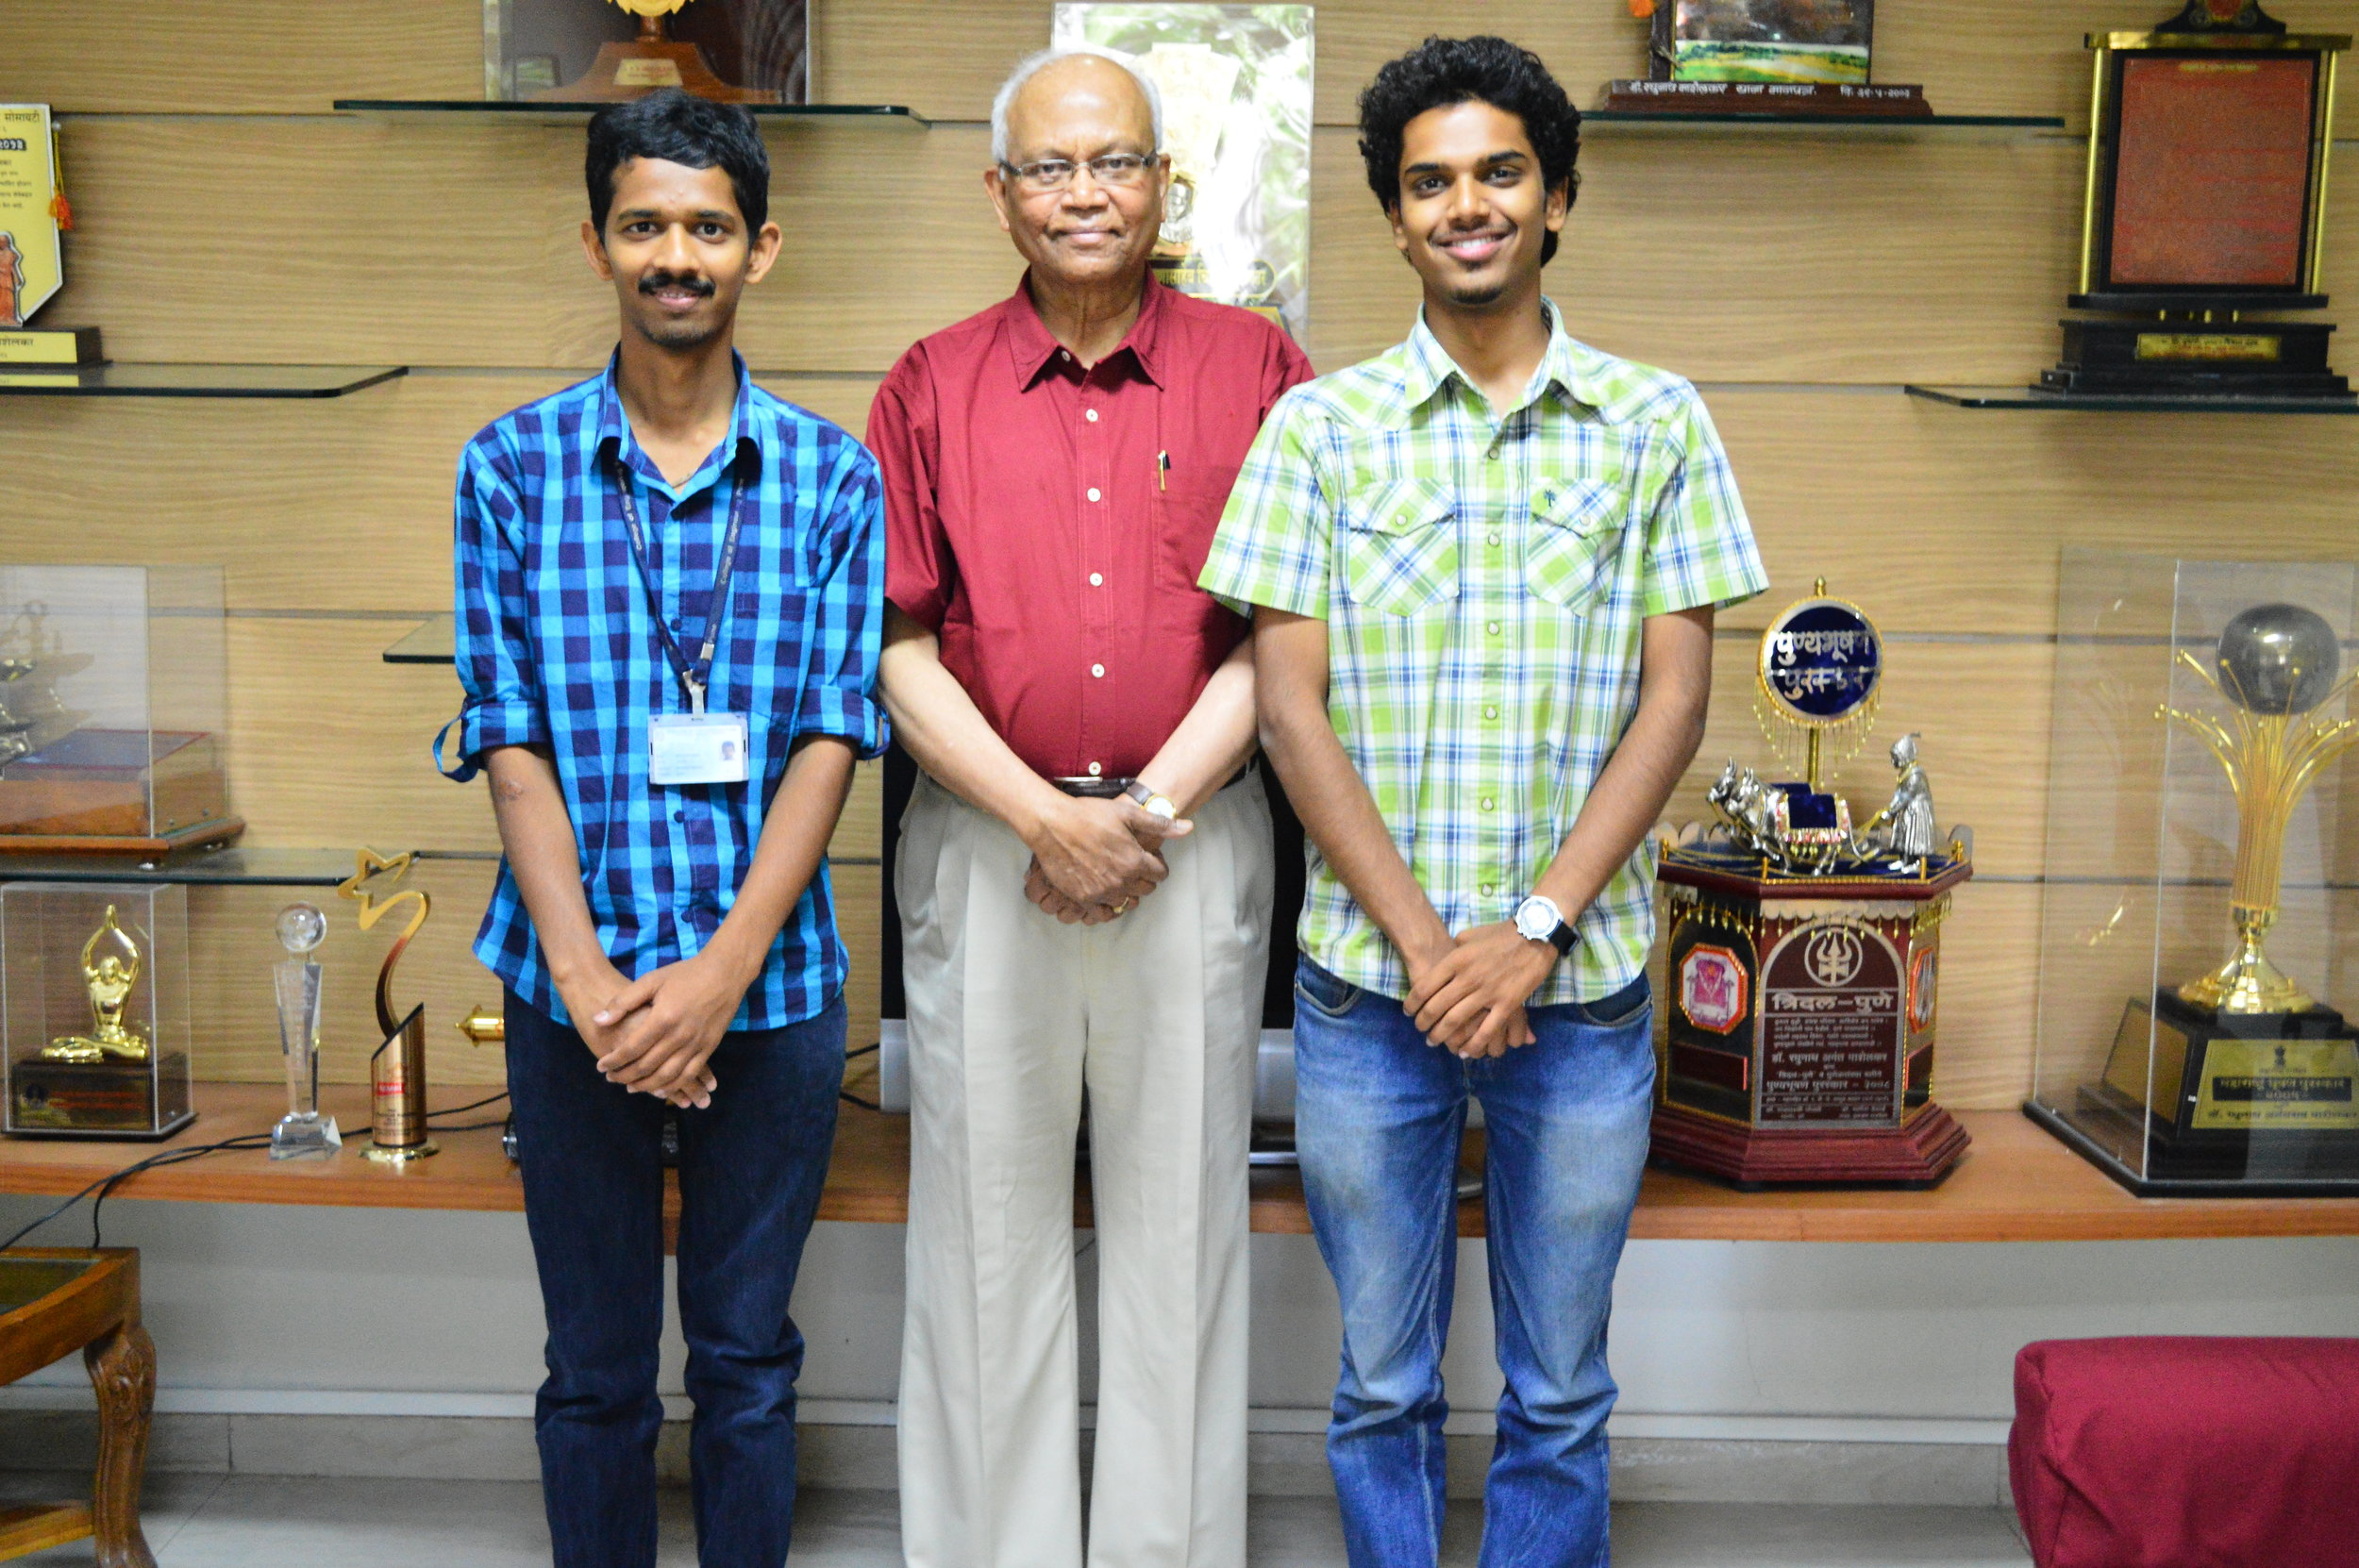 Dr. Raghunath Mashelkar (India's one of the most eminent scientists)